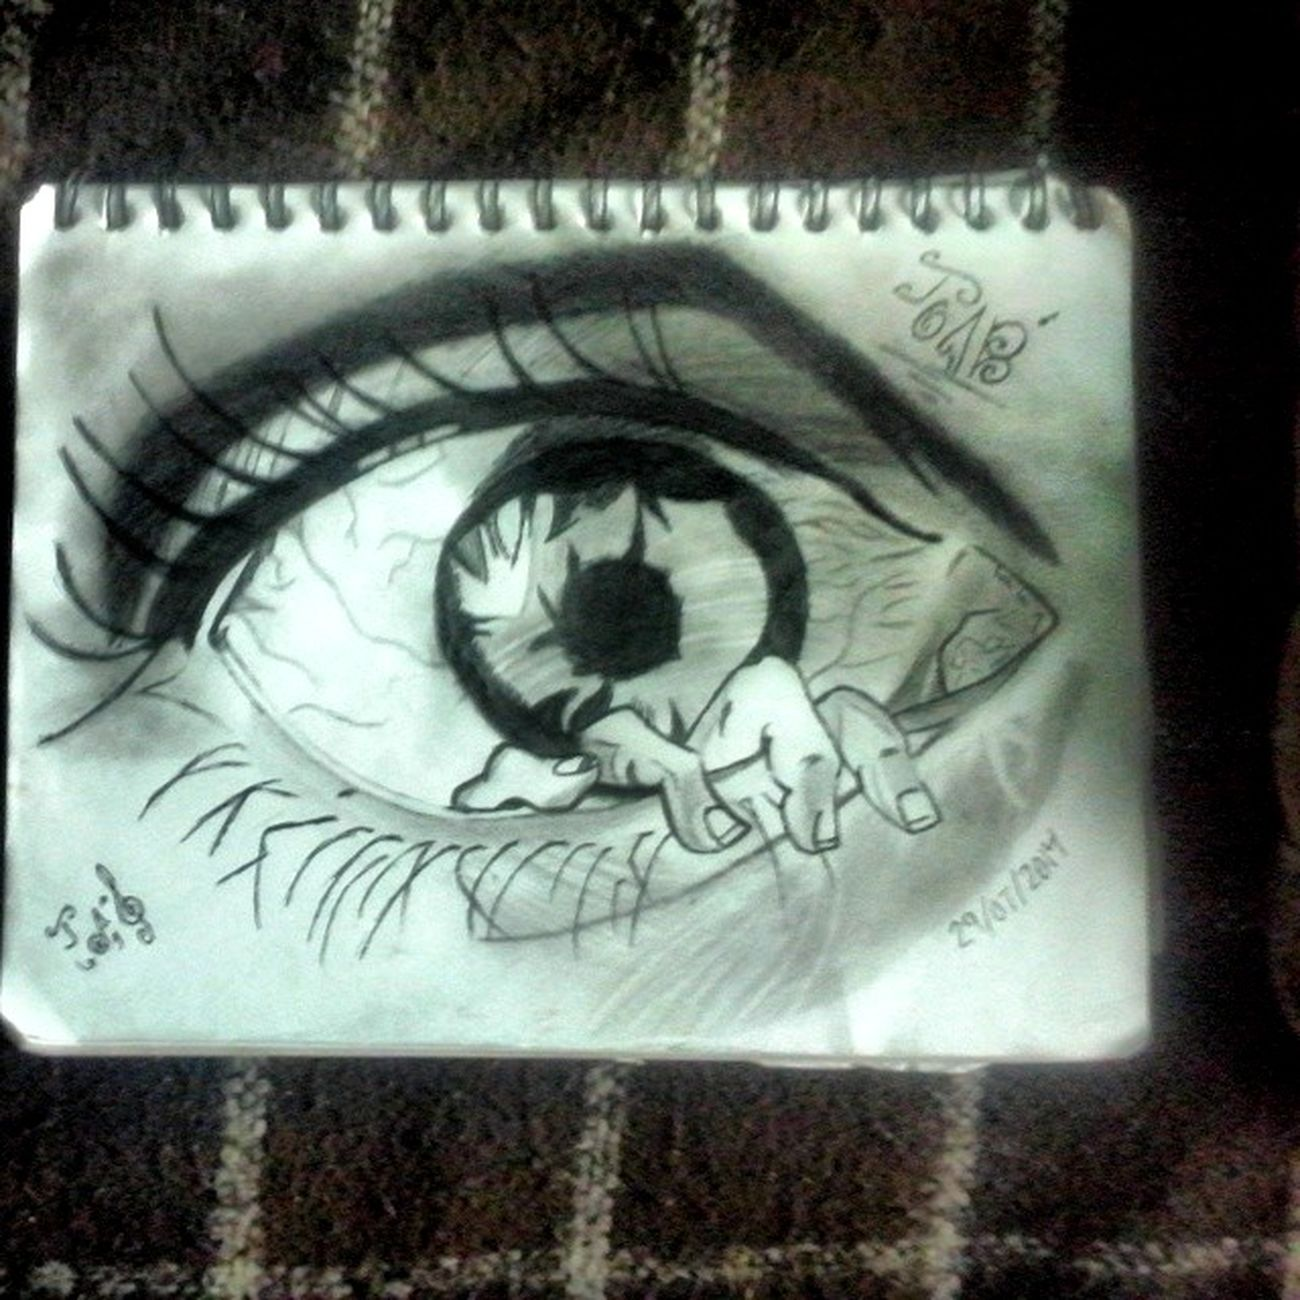 La Mente Detras Del Lapiz Drawing Ojo Mis Dibujos Dibujo A Lapiz Drawingtime Art, Drawing, Creativity Dibujo Draw ArtWork